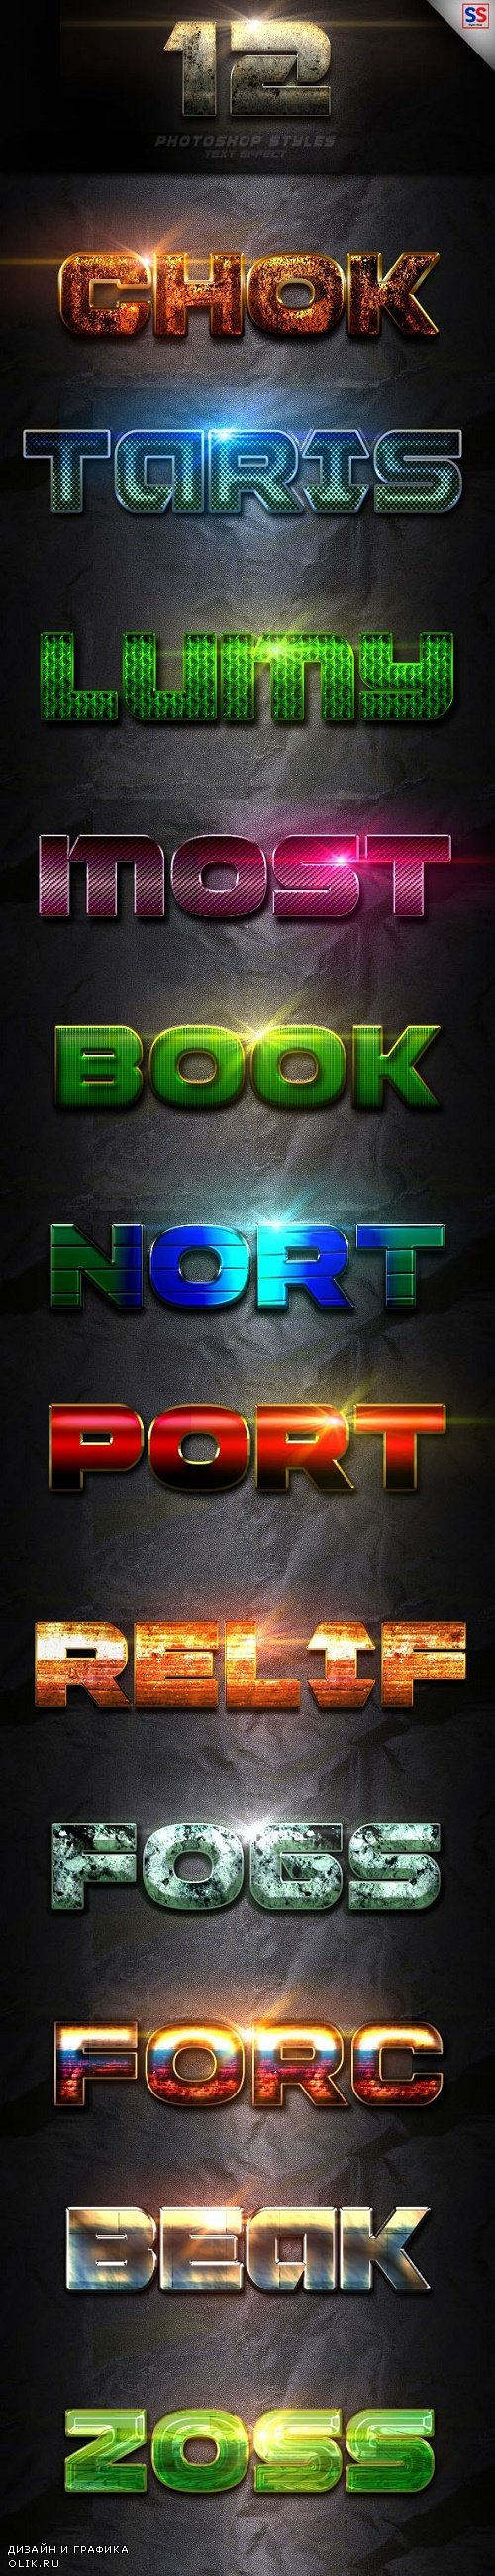 12 Photoshop text Effect Vol 7 - 23115848